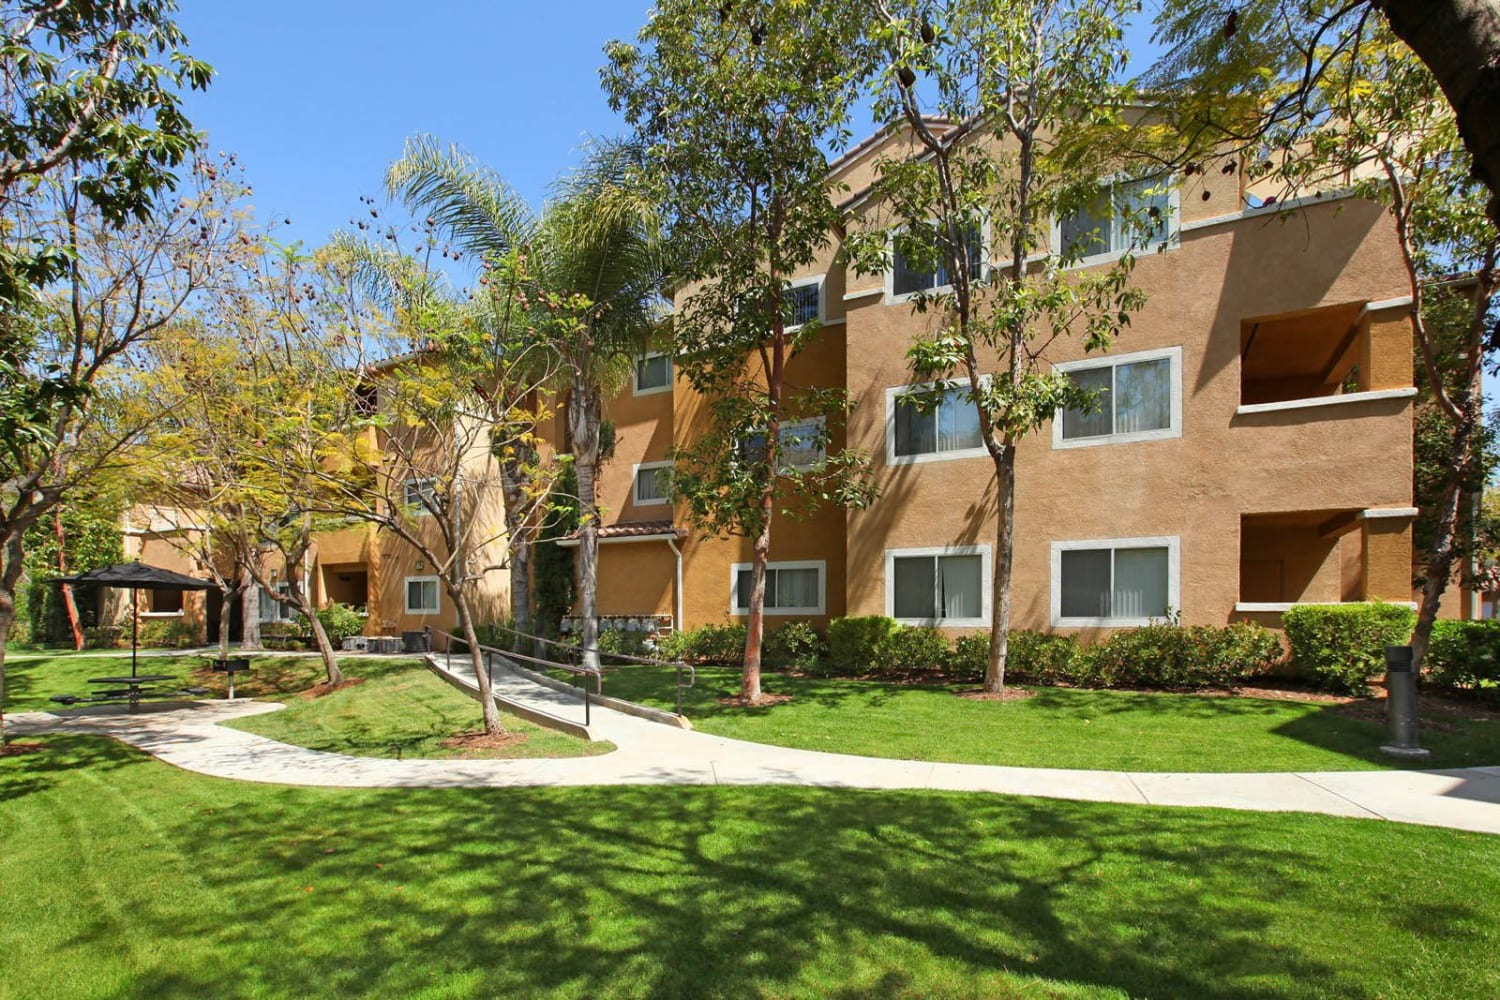 Grounds at Madrid Apartments in Mission Viejo, California